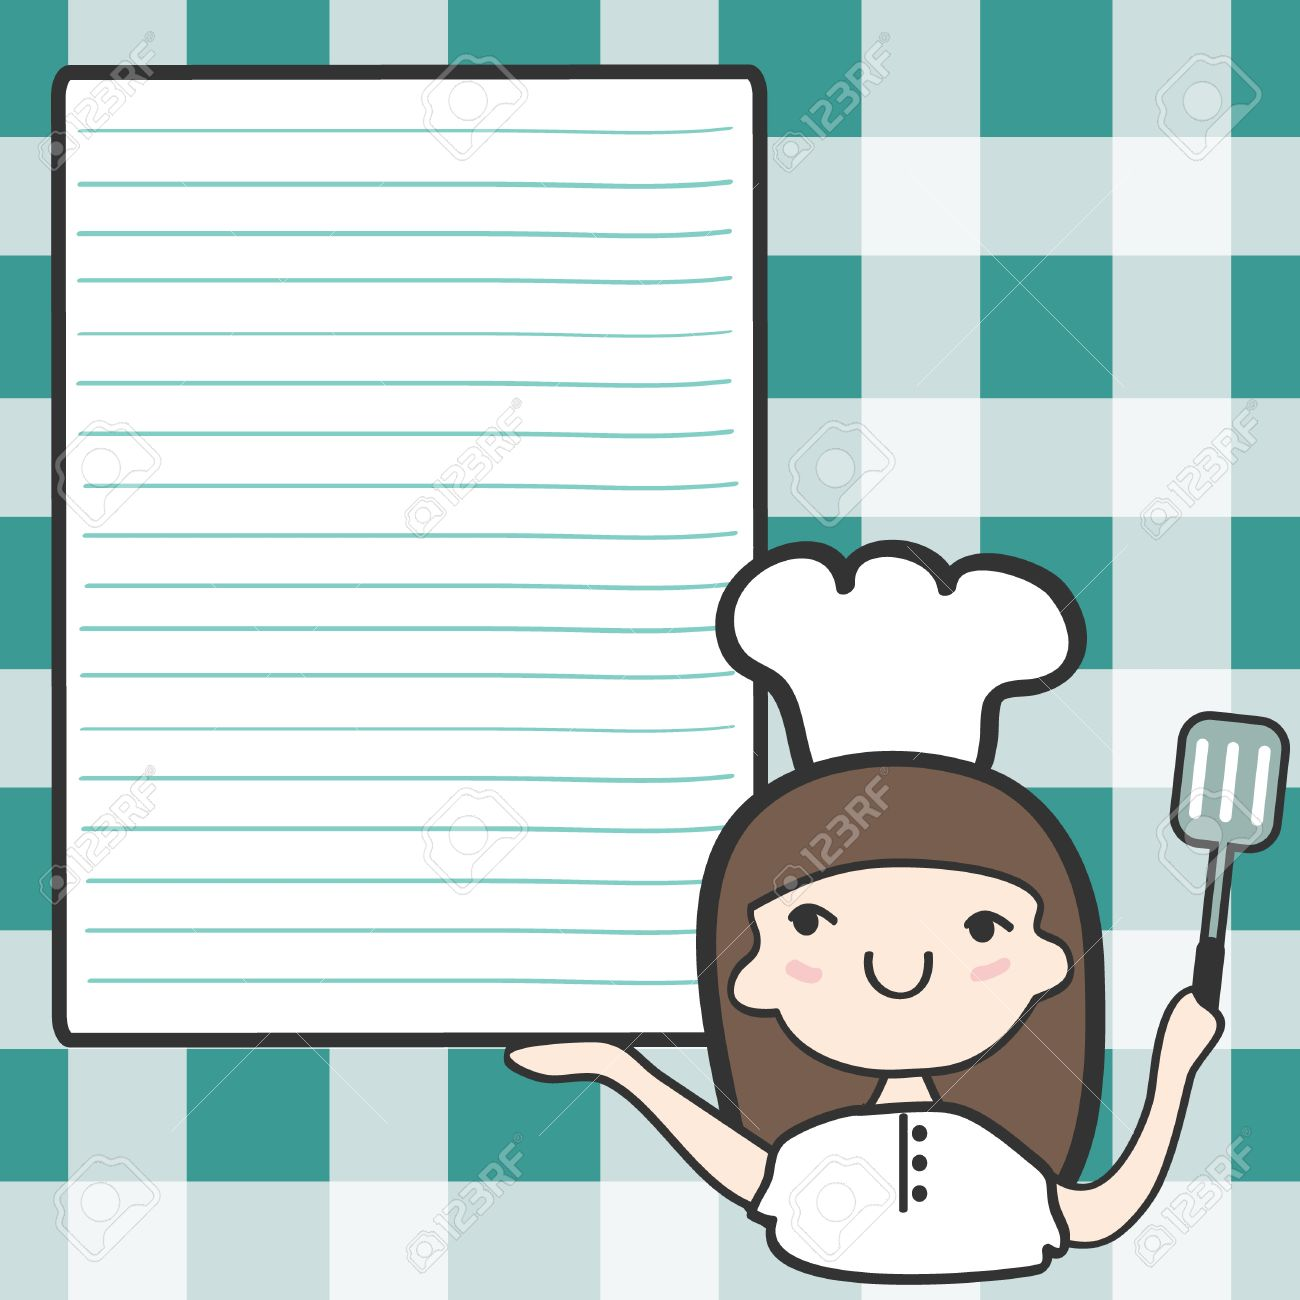 Cute chef woman clipart image royalty free stock Cute Girl Chef With An Empty Space, Cartoon Illustration Royalty ... image royalty free stock